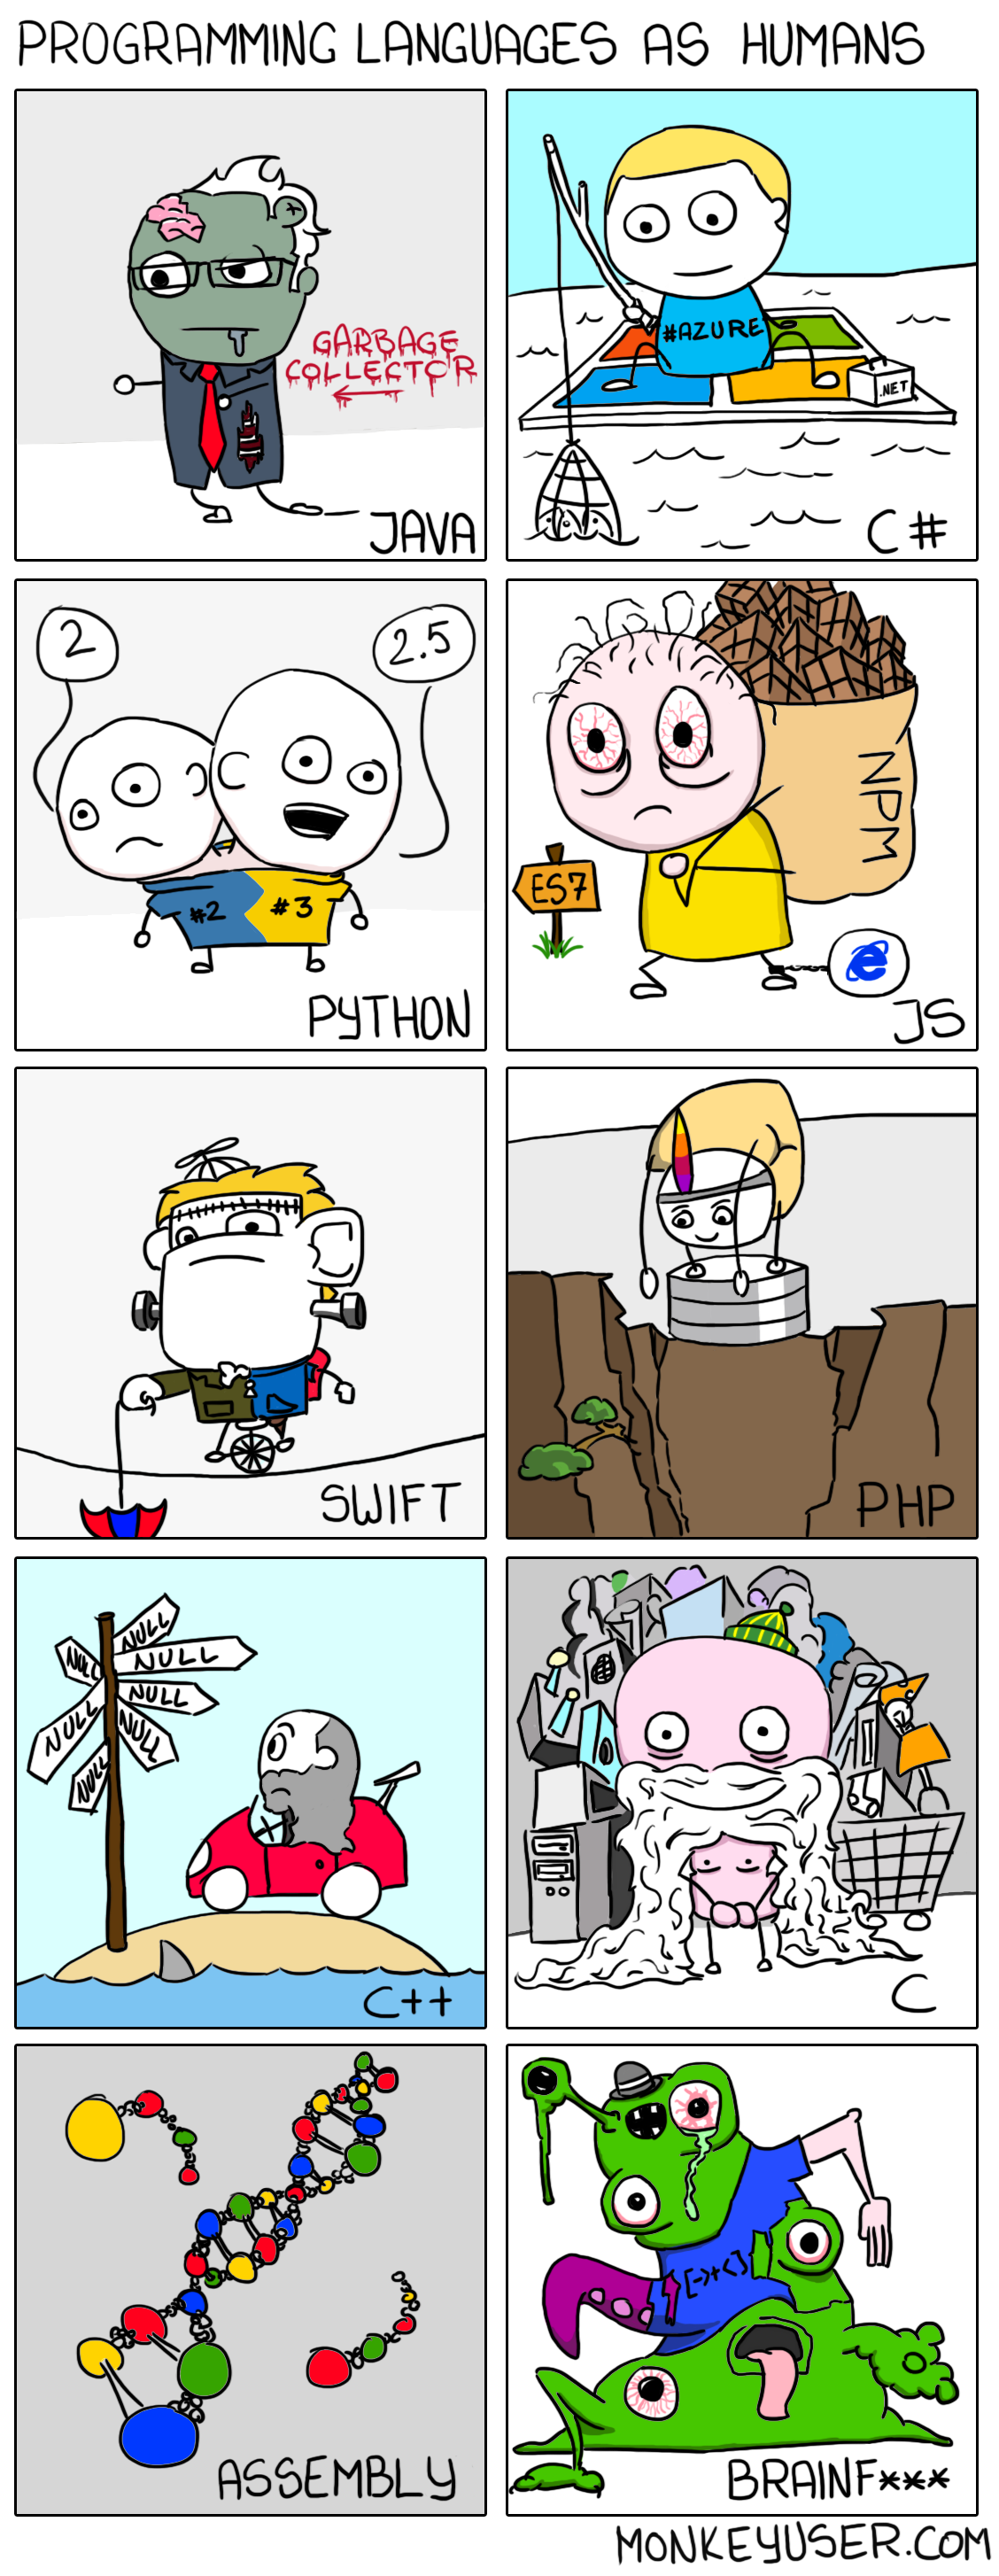 Programming languages as humans